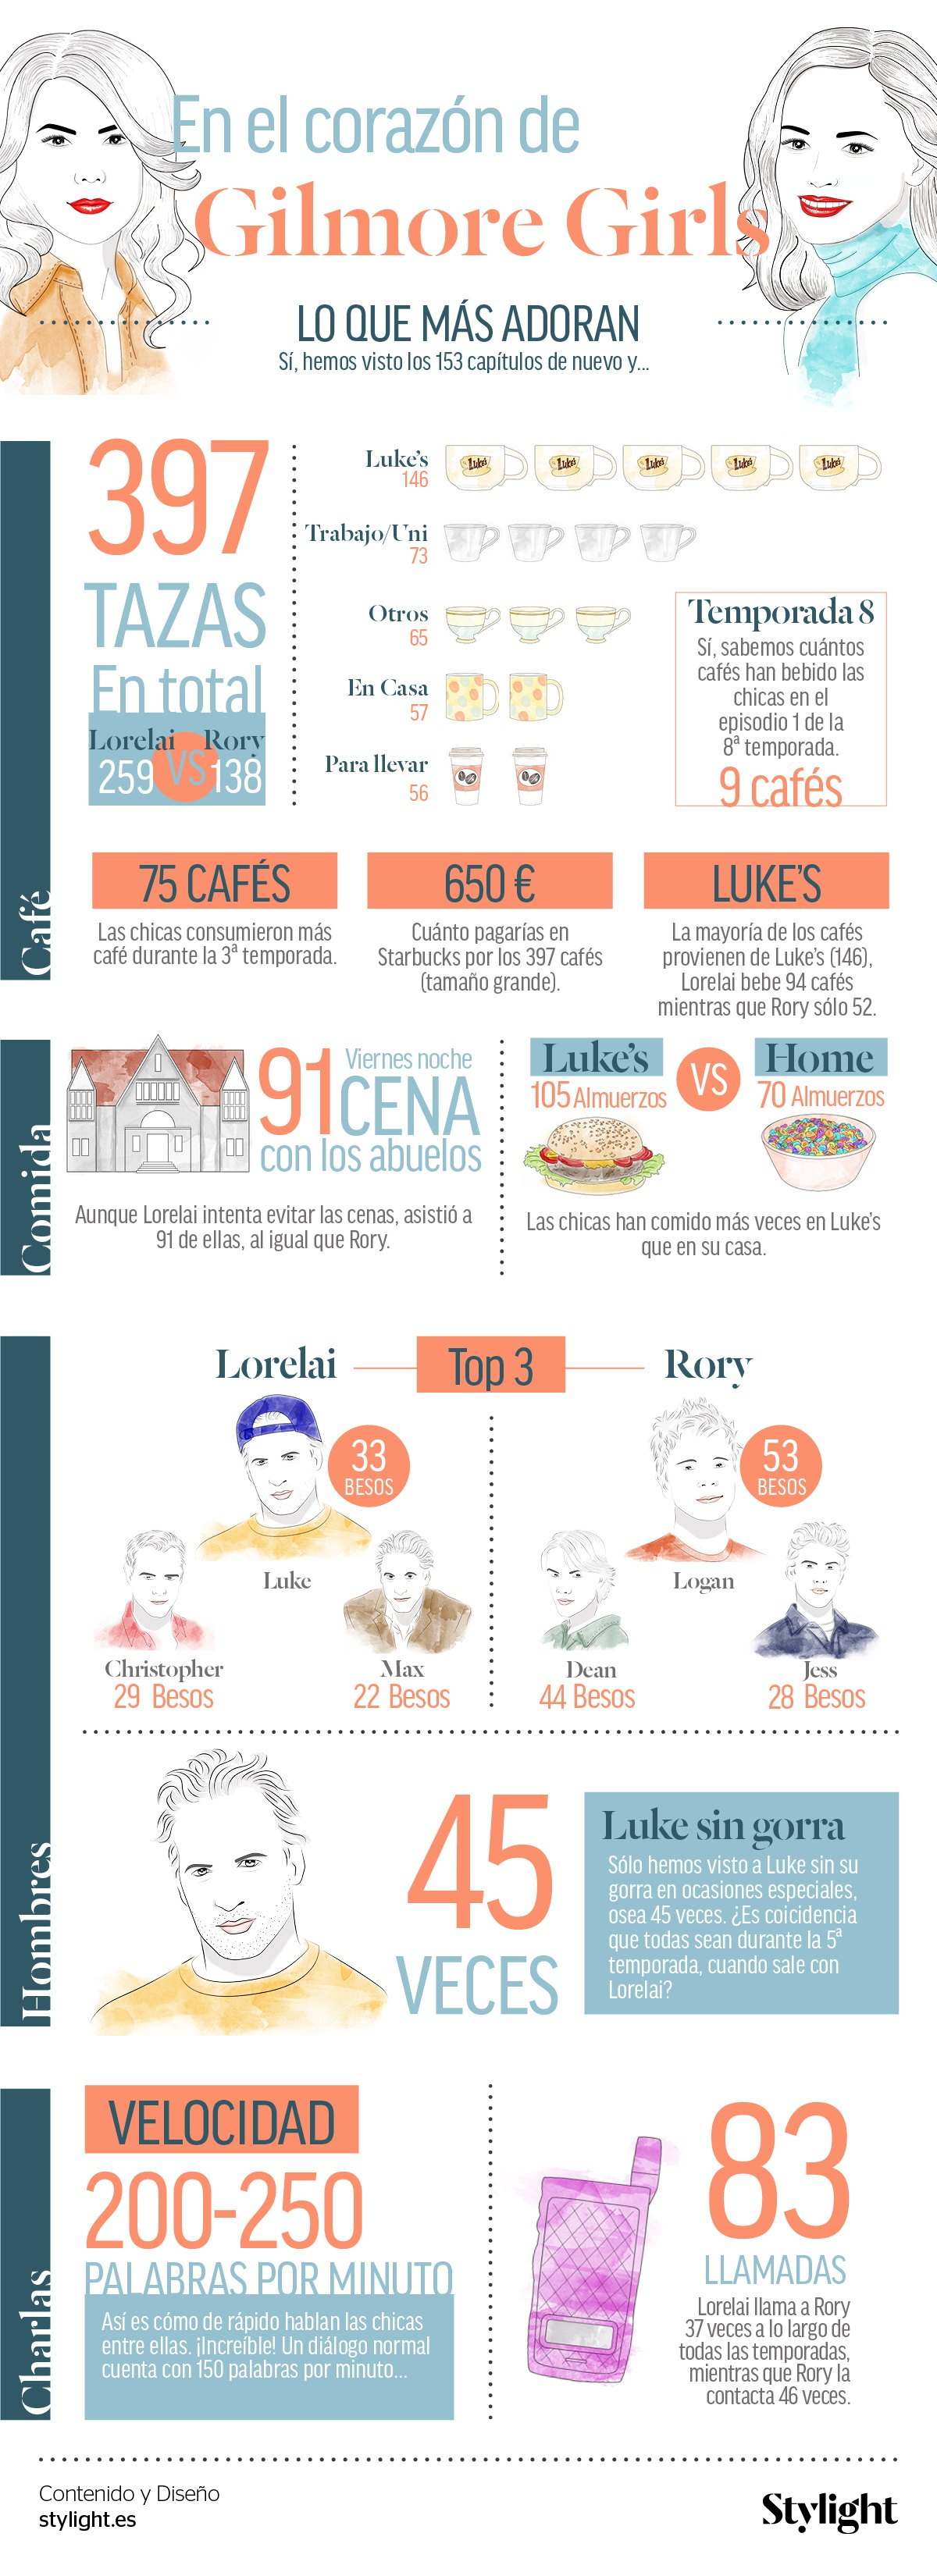 stylight-gilmore-girls-infografico